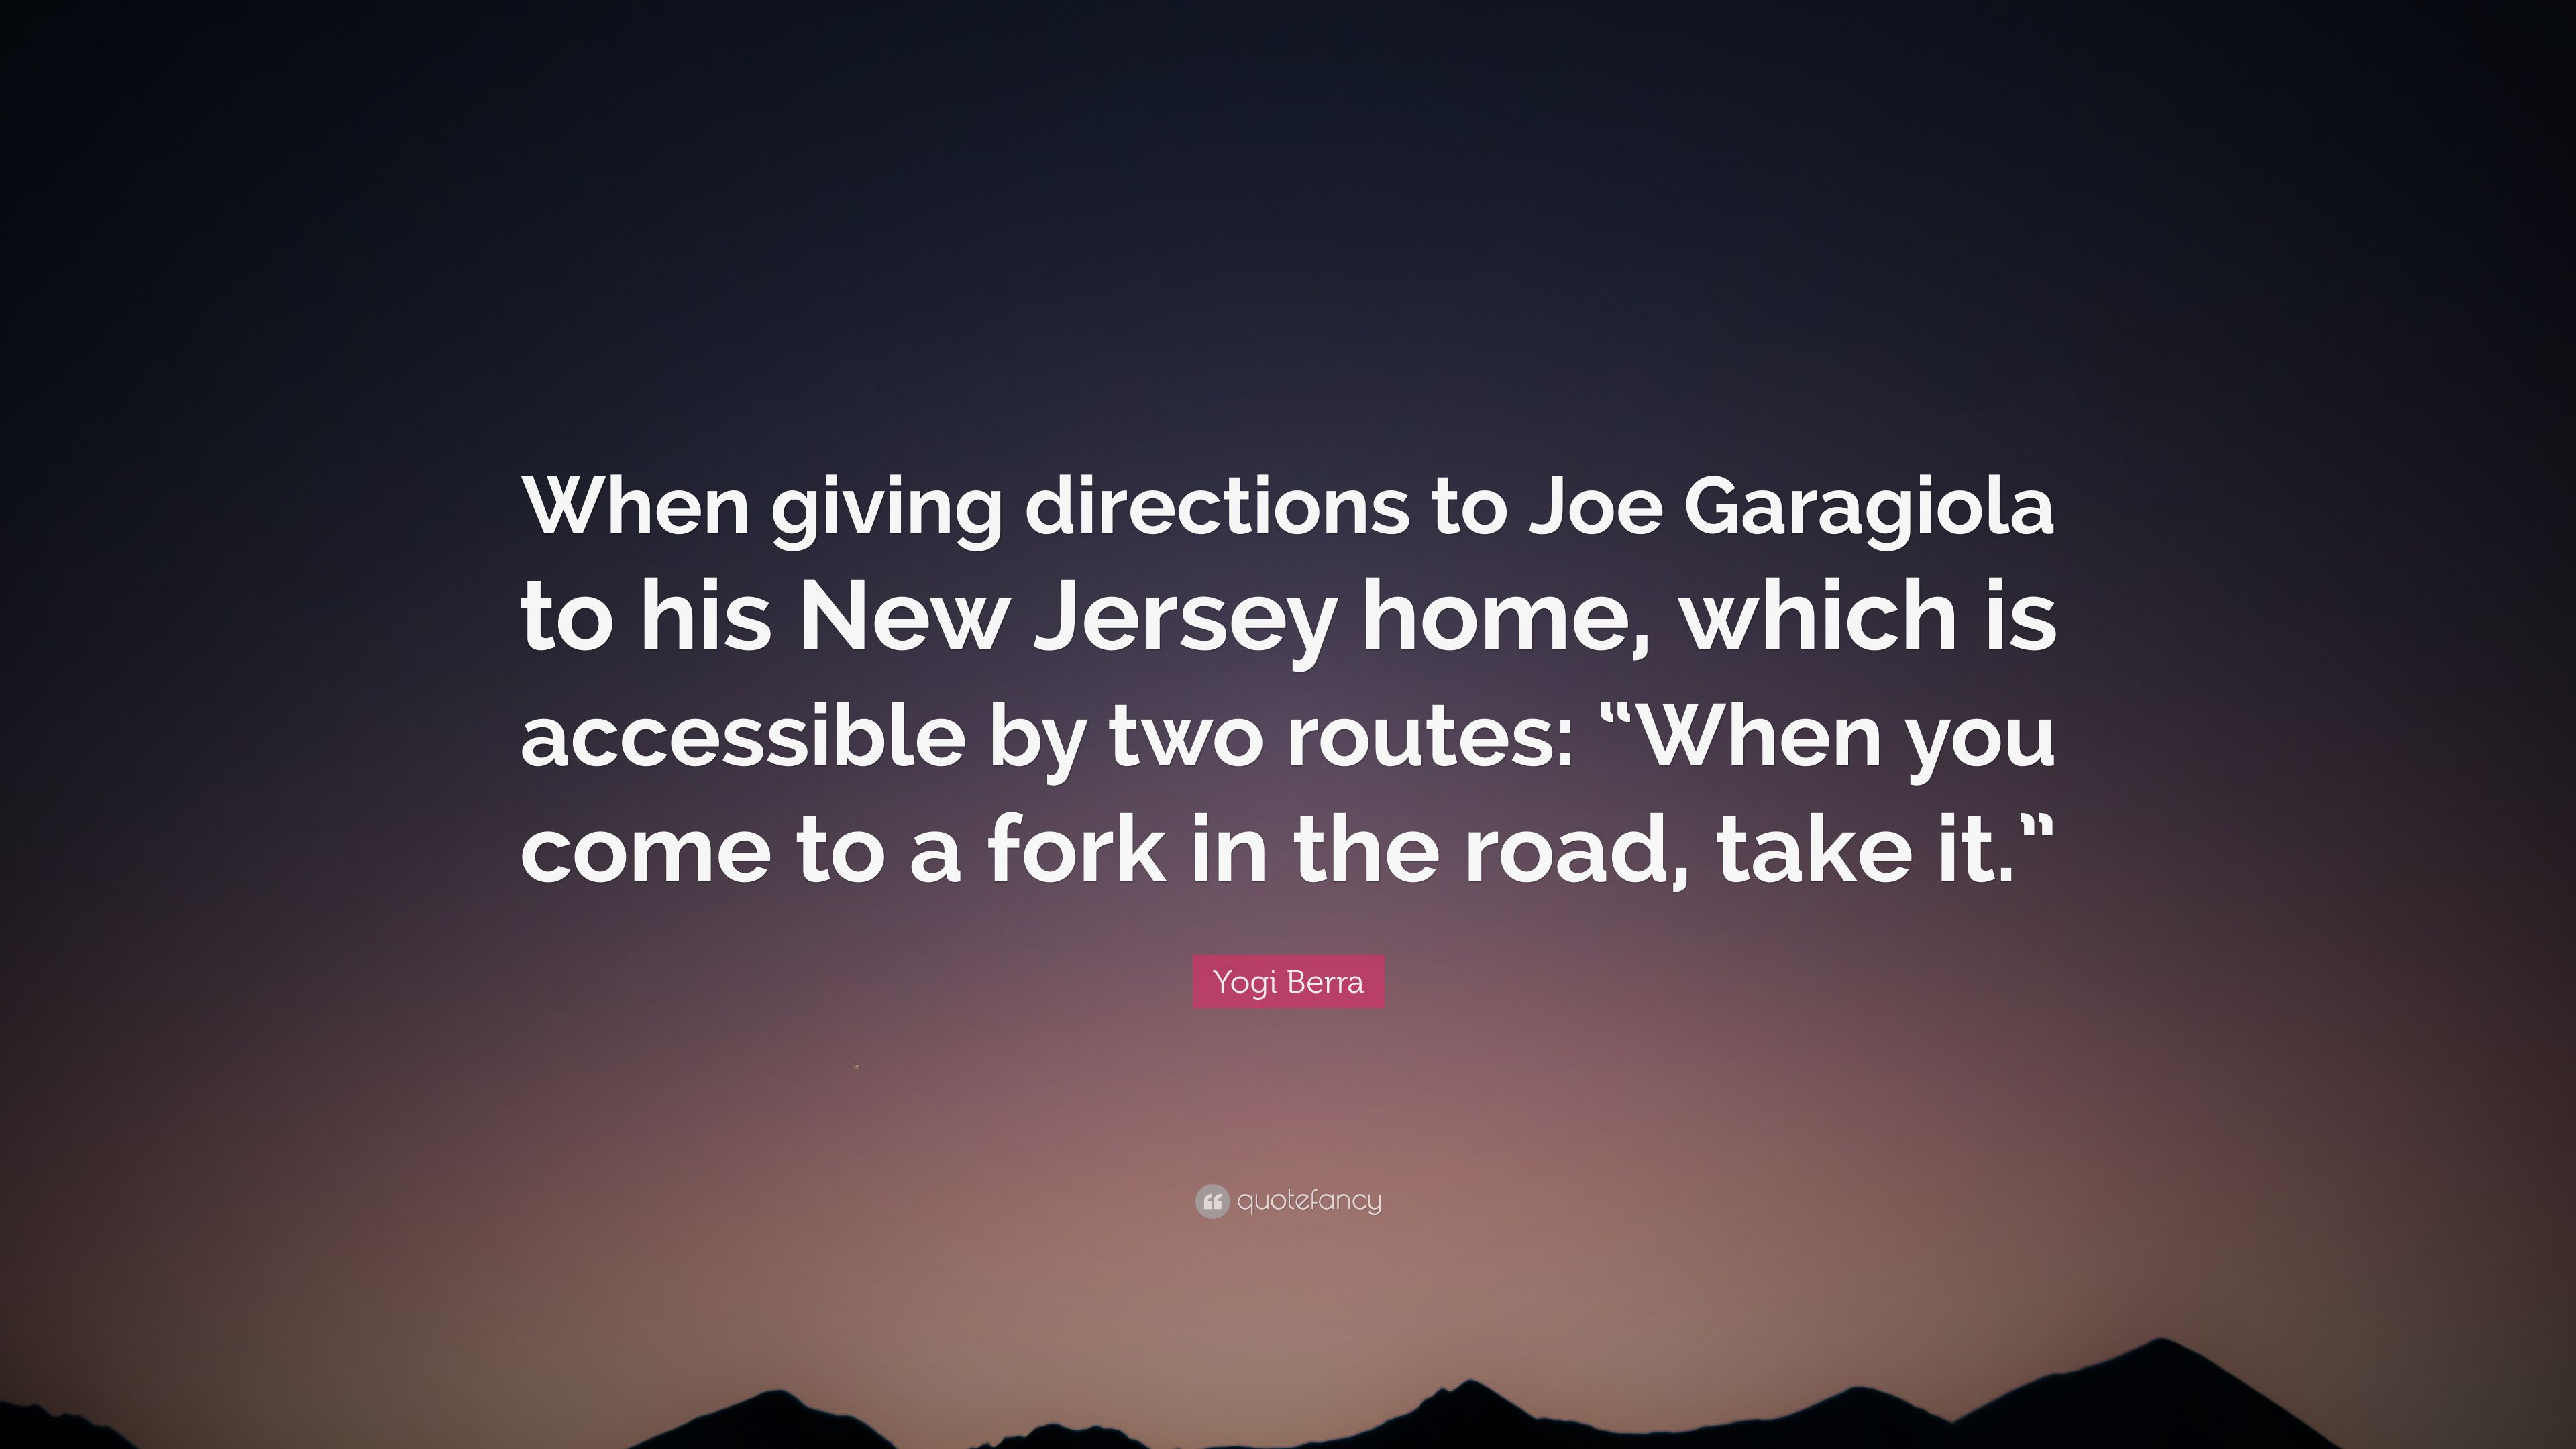 Yogi Berra Quote When giving directions to Joe Garagiola to his